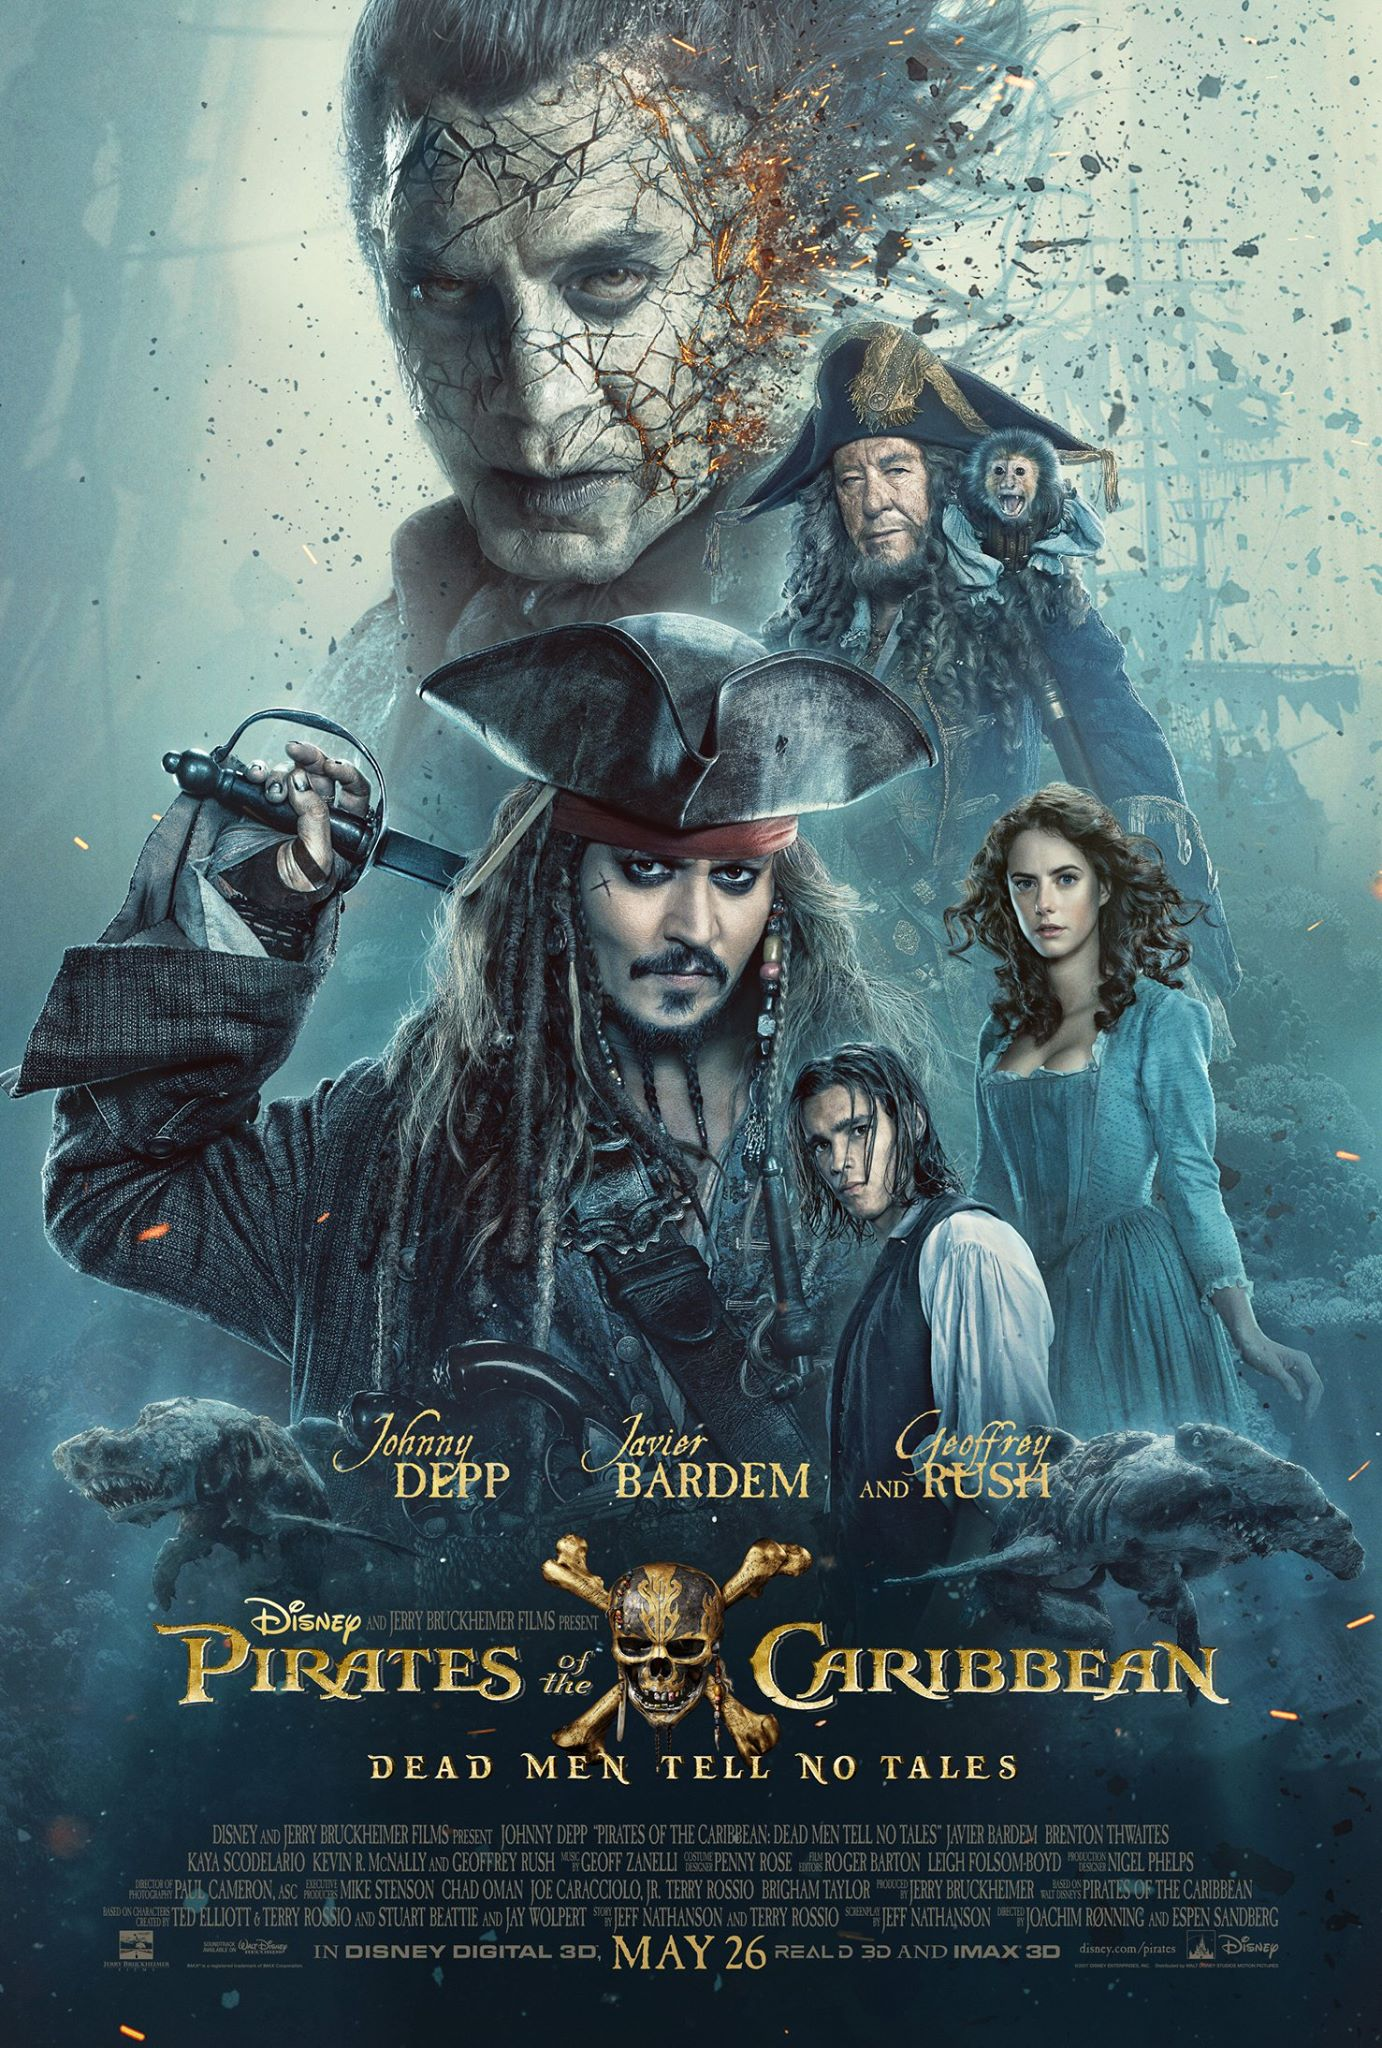 Pirates Of The Caribbean: Dead Men Tell No Tales Poster Released